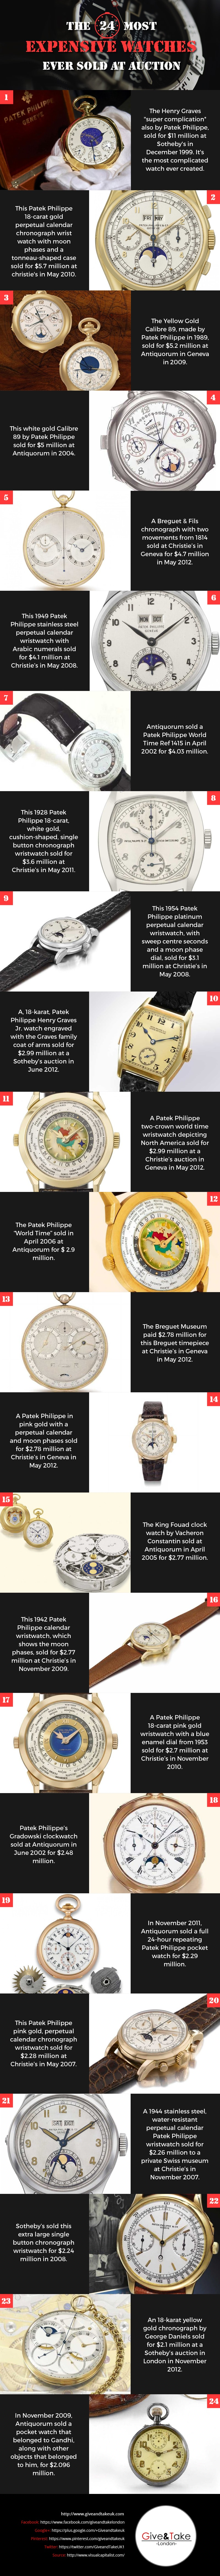 The 24 Most Expensive Watches Ever Sold at Auction